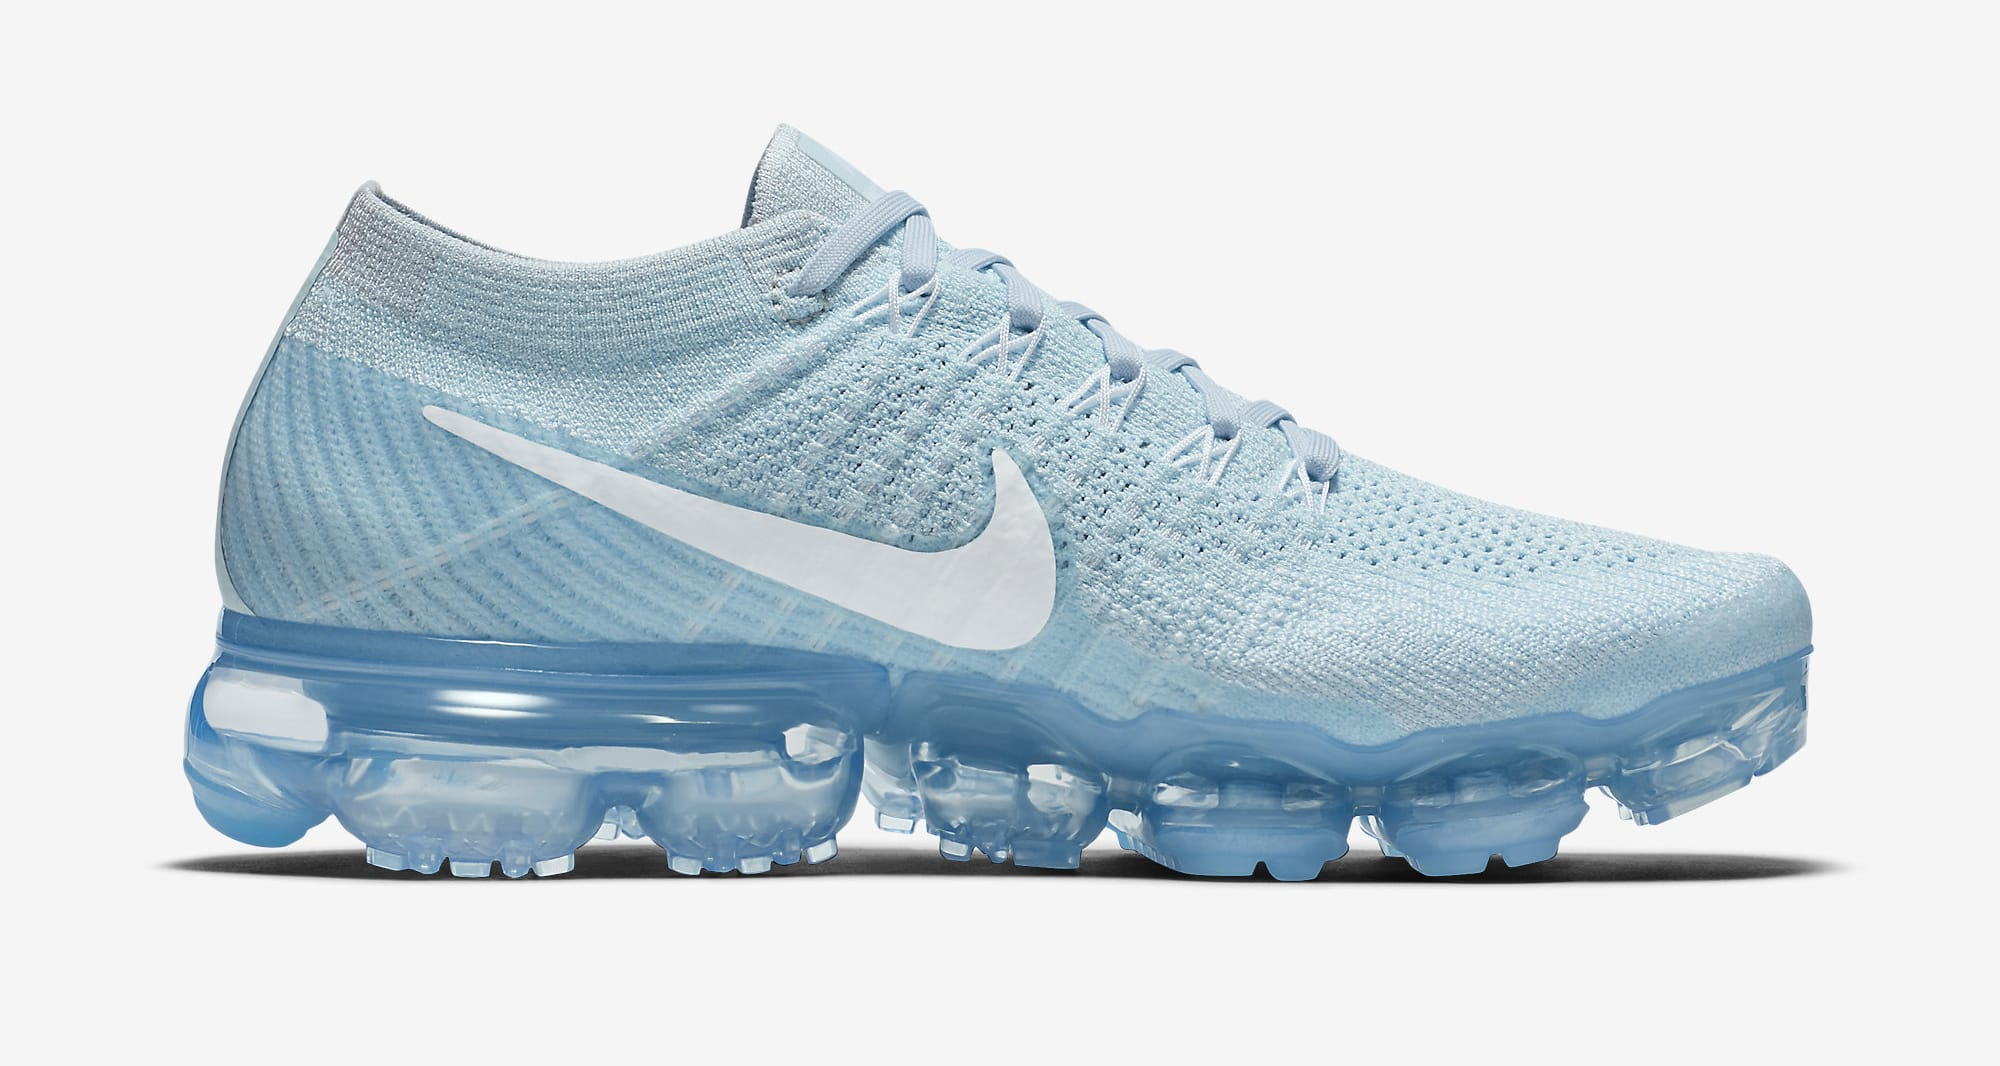 668ebbceac43 Buy Nike Cheap Air Vapormax Flyknit Running Shoes Sale Online 2018